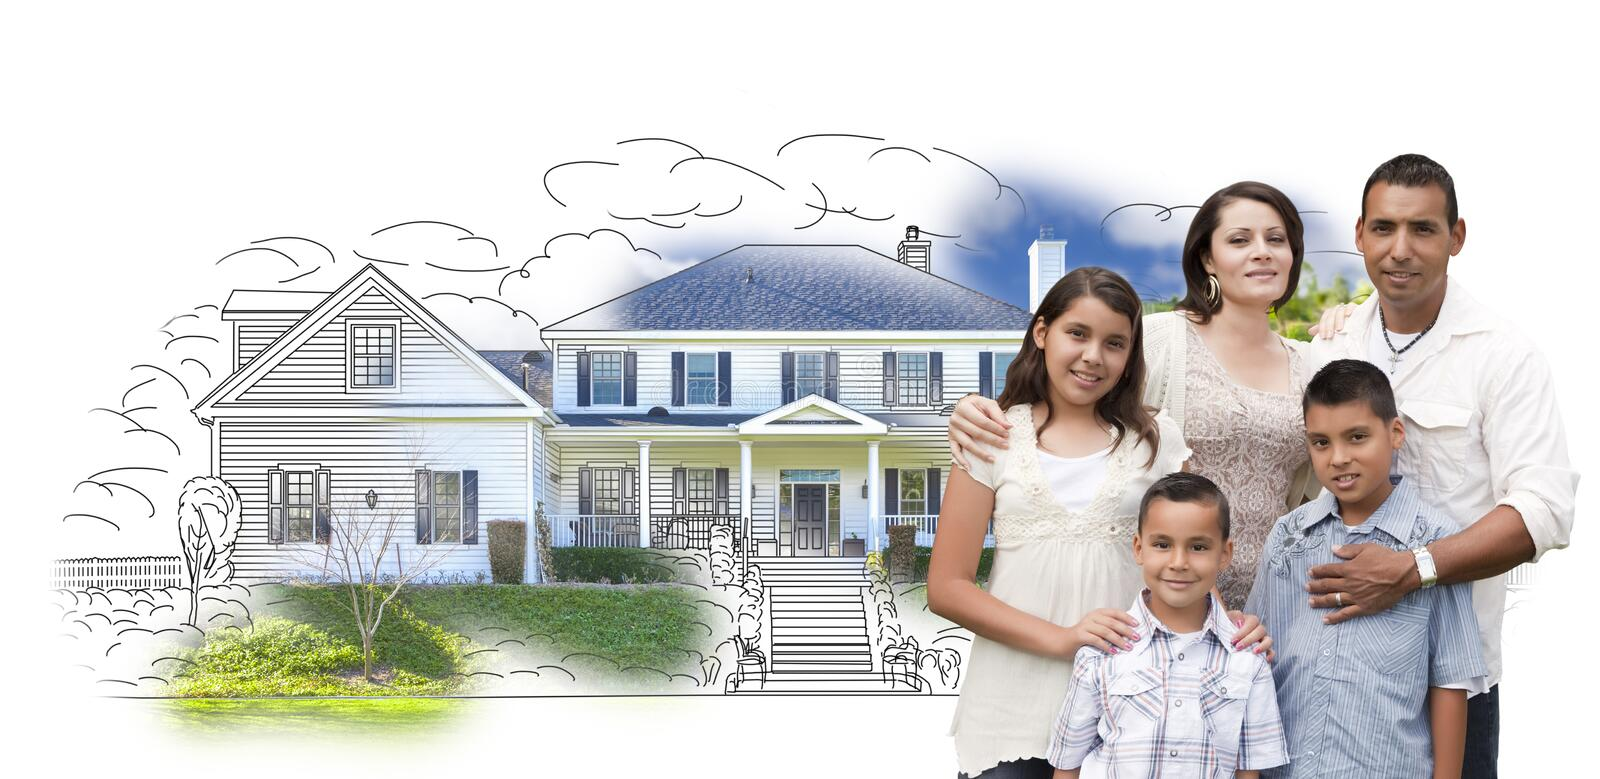 Young Hispanic Family Over House Drawing and Photo on White royalty free illustration